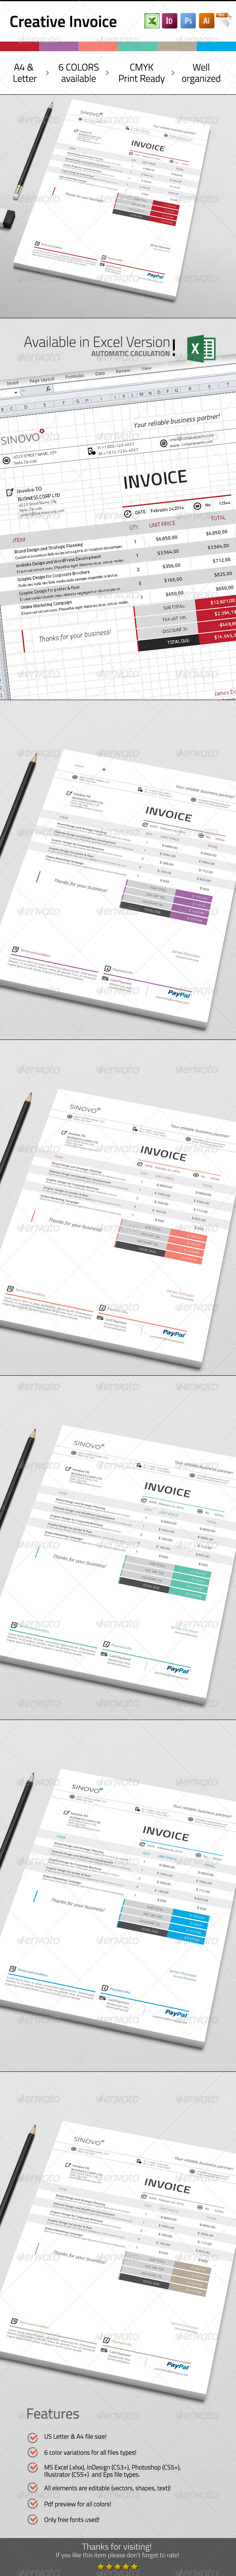 Creative Invoice - Proposals & Invoices Stationery